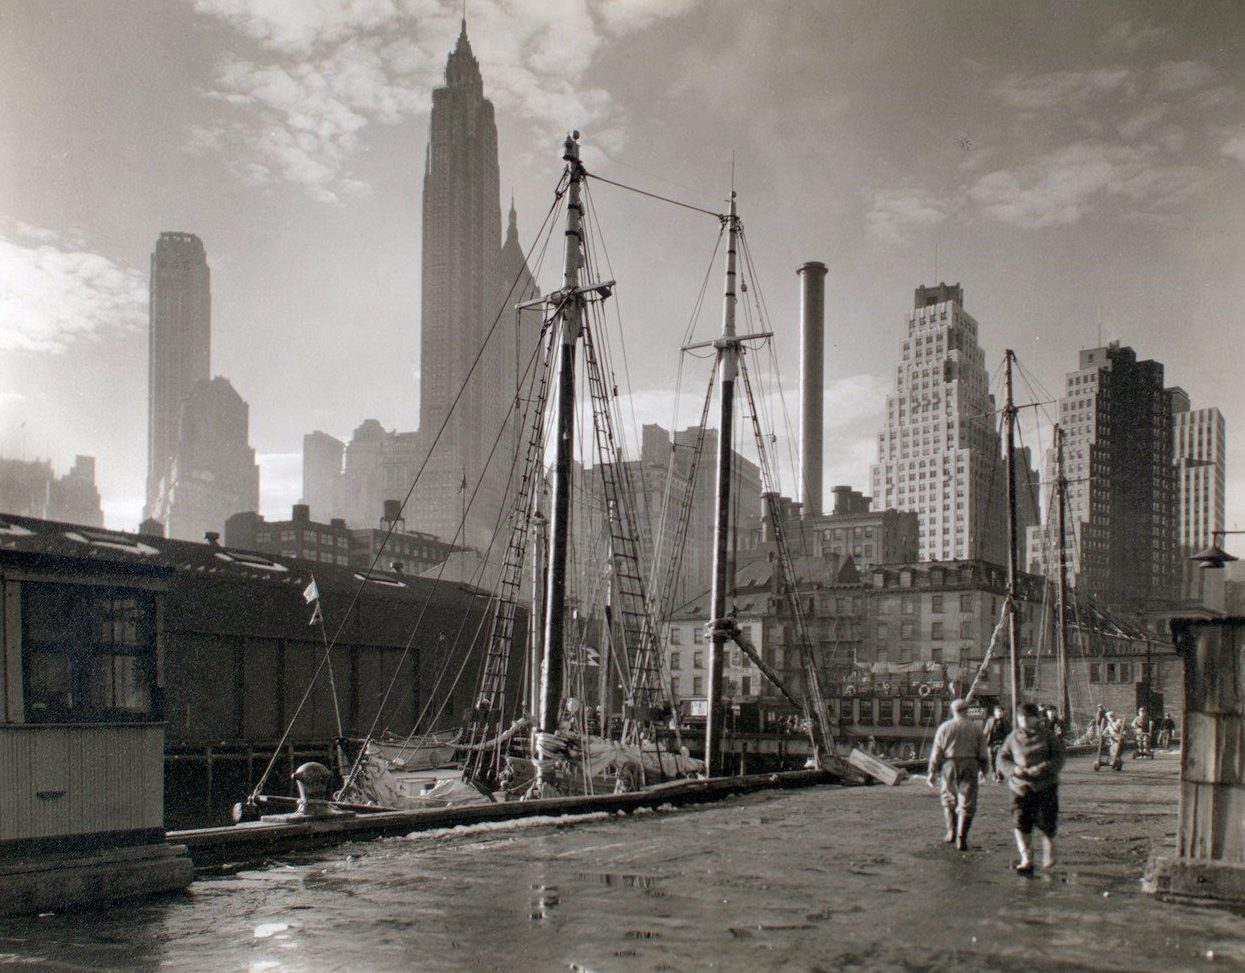 Fulton Street Dock, New York Public Library, 1935 NYC